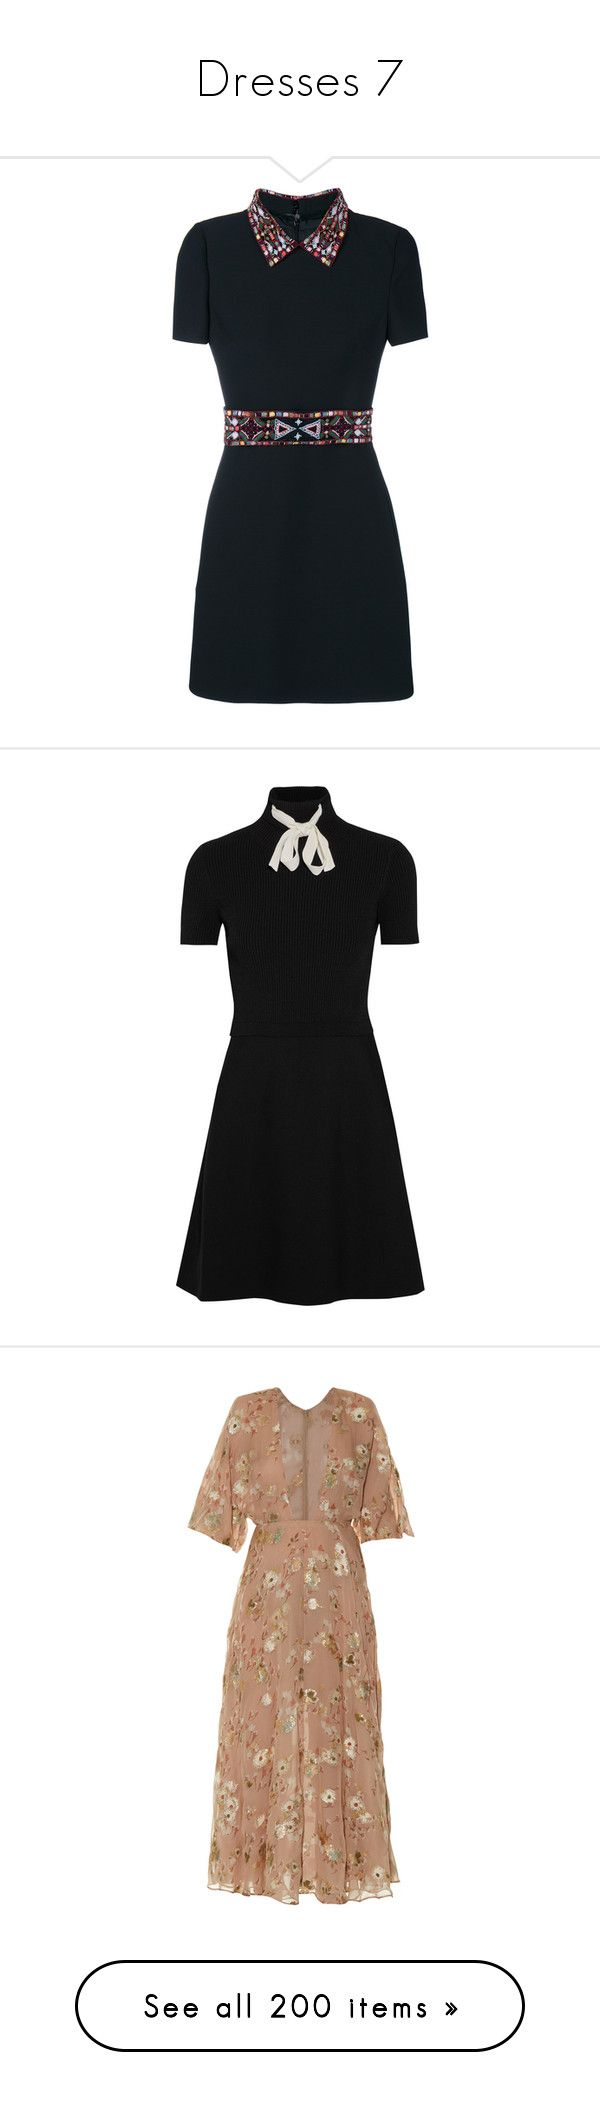 """""""Dresses 7"""" by lashanna-bing ❤ liked on Polyvore featuring dresses, vestidos, short dresses, embroidery dresses, short beaded dress, short sleeve a line dress, short sleeve mini dress, rib dress, stretch knit dress and gucci dress"""